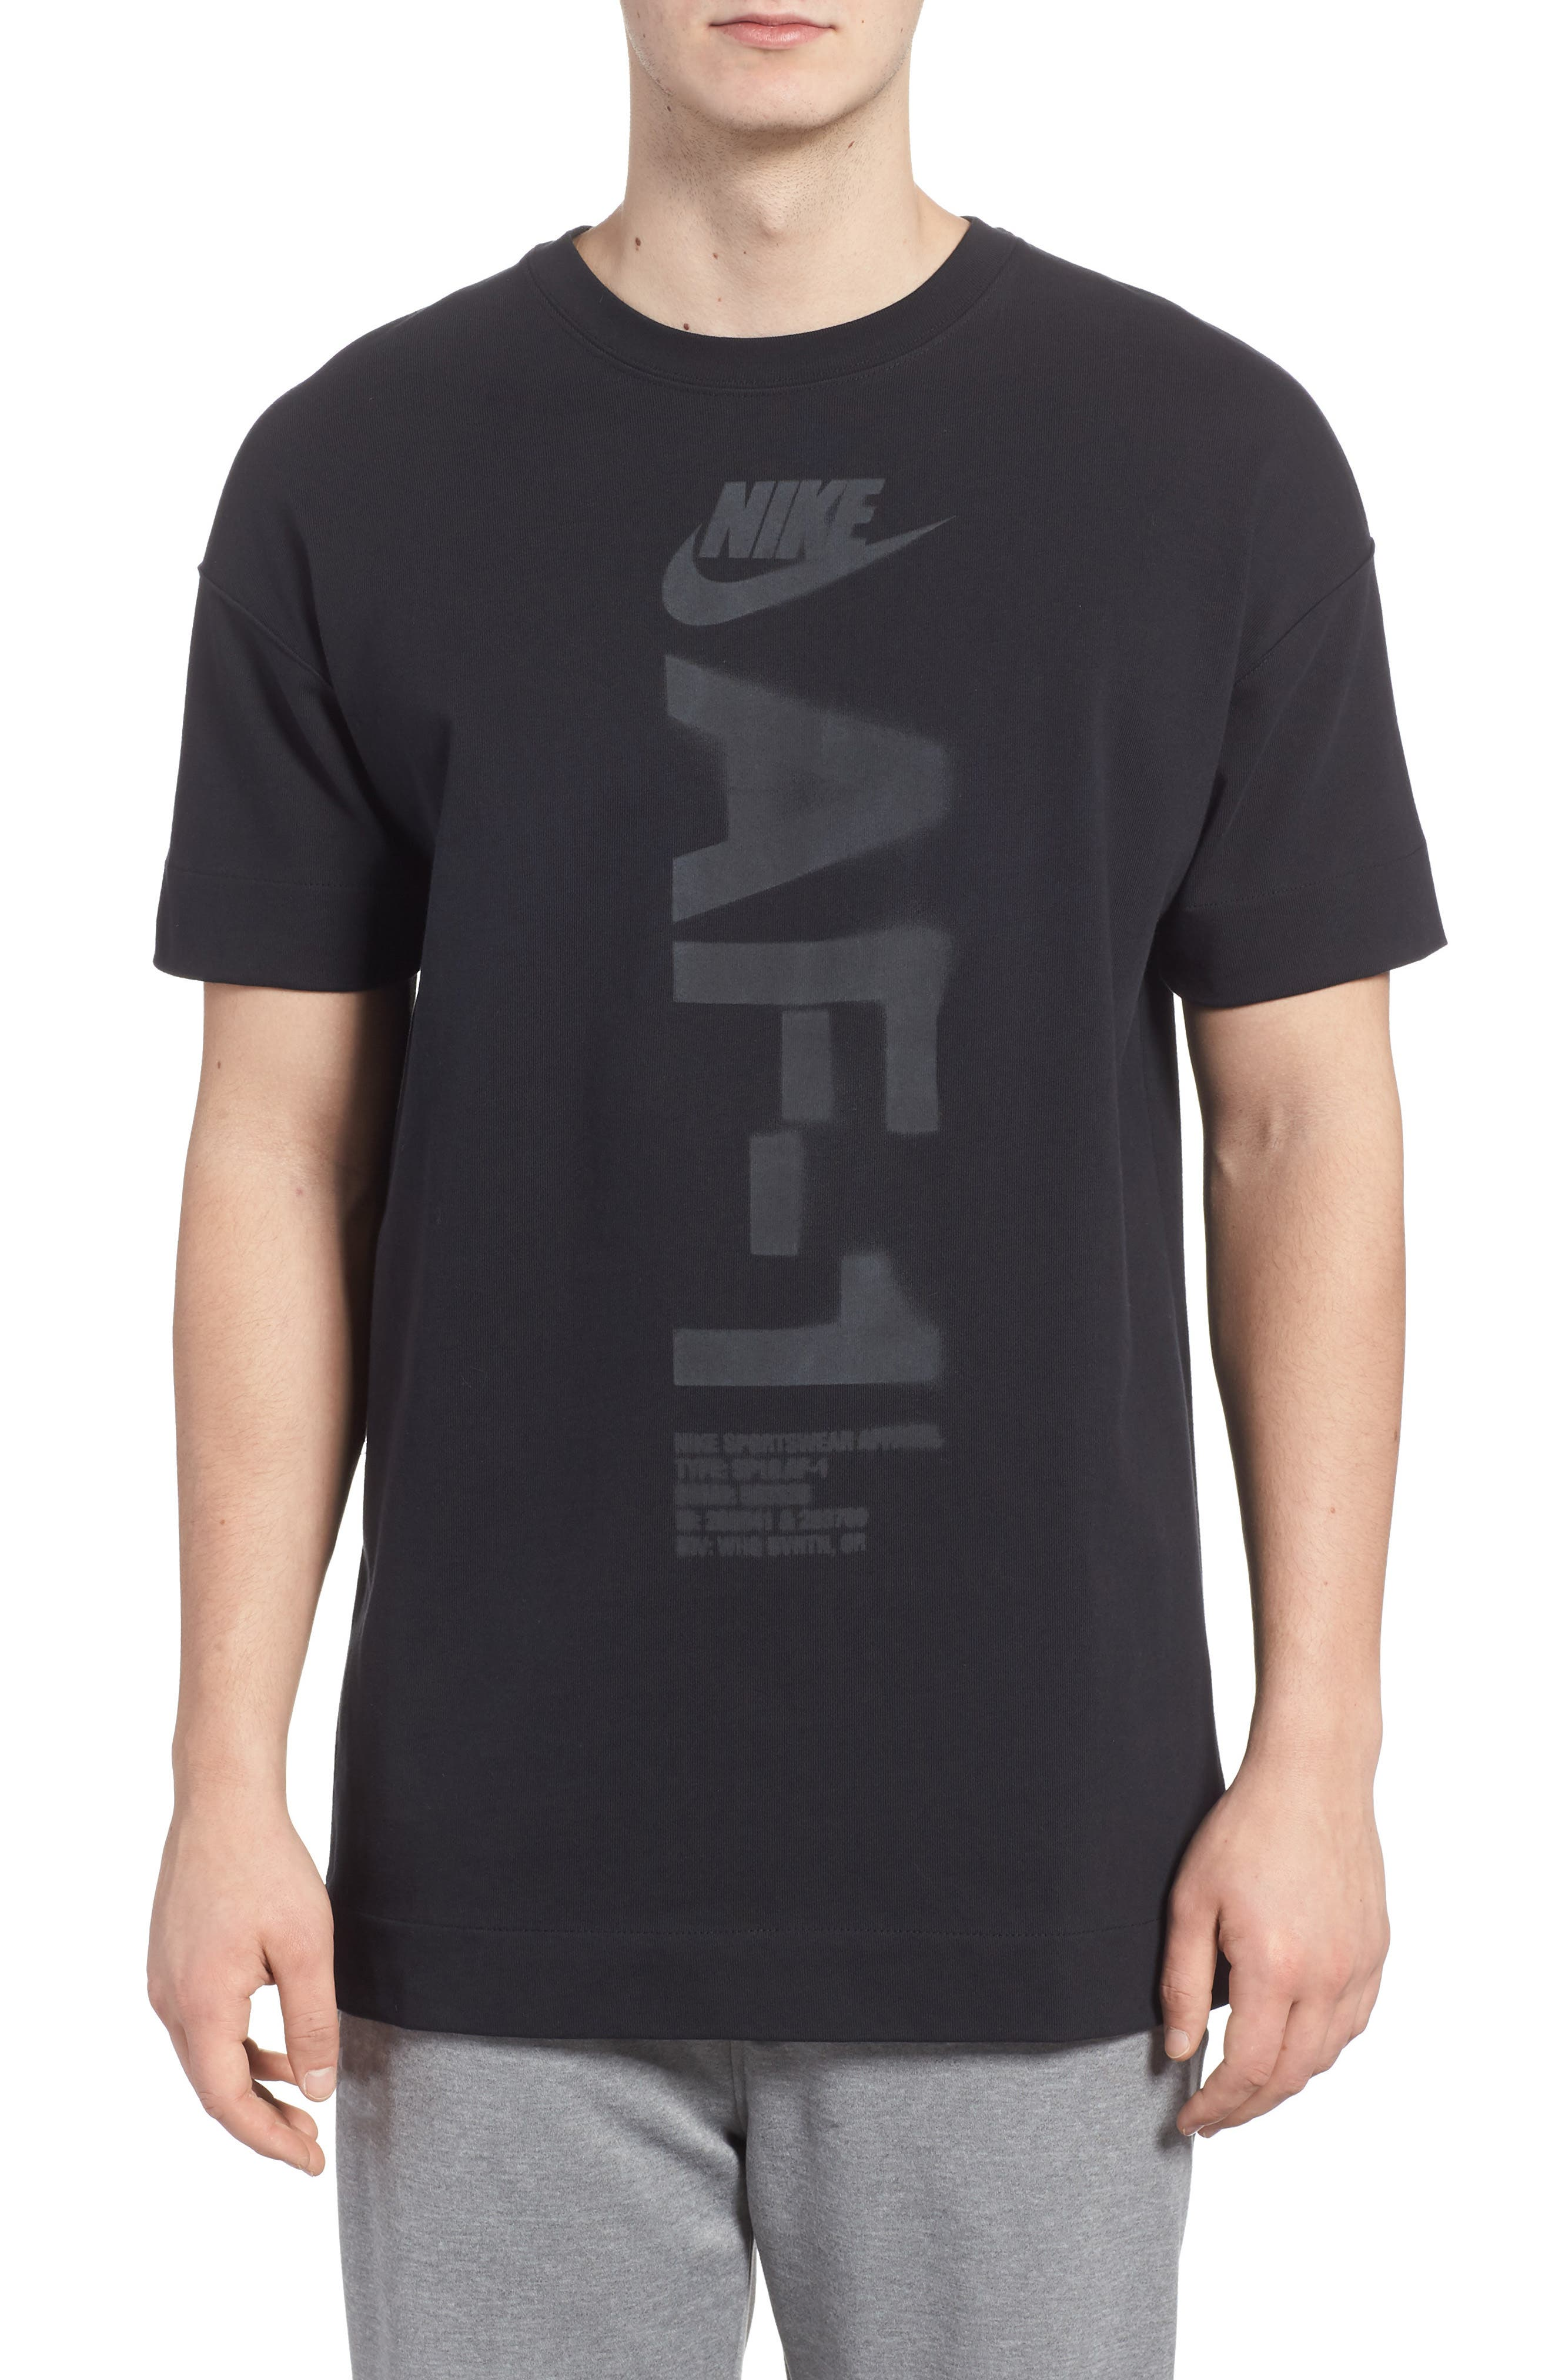 NSW Heavyweight AF-1 T-Shirt,                             Main thumbnail 1, color,                             010